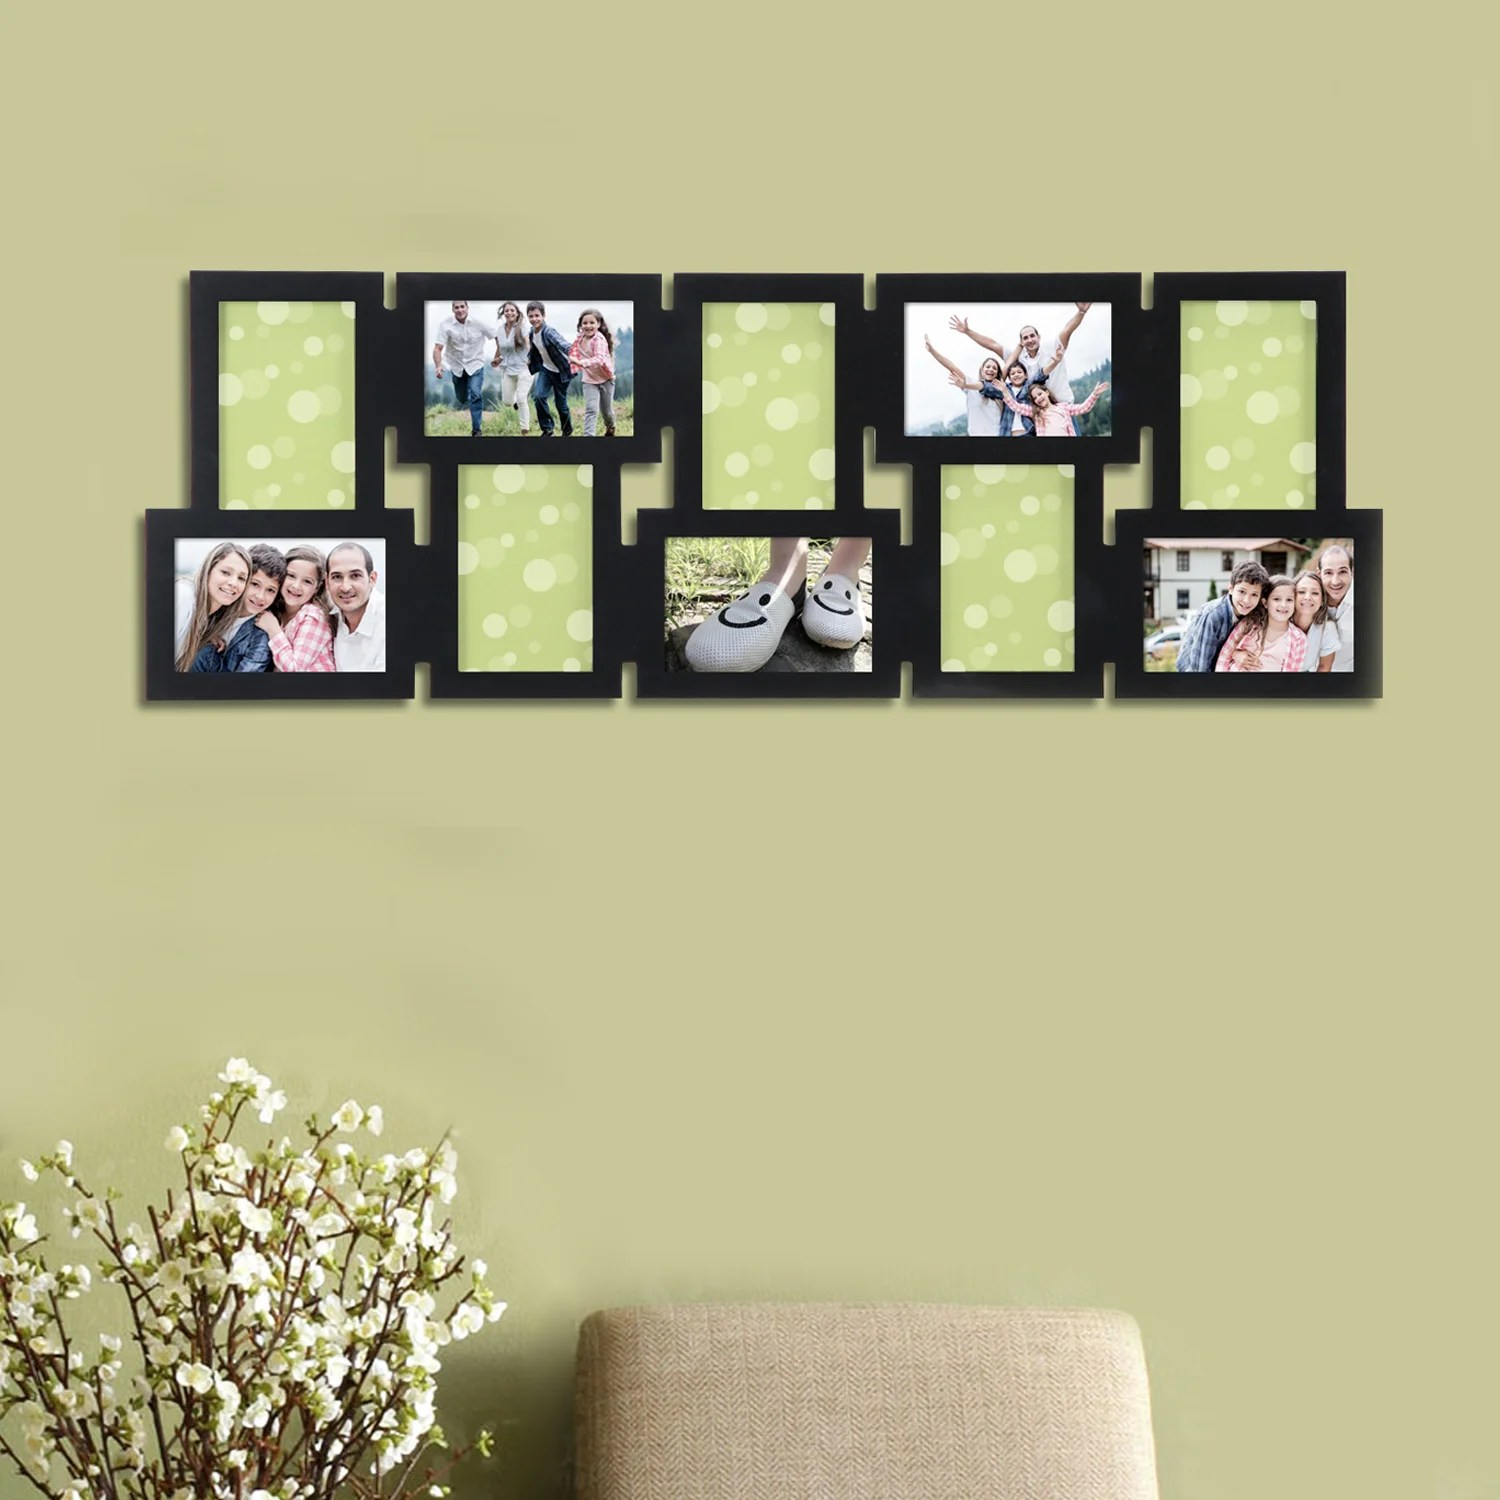 Modern Ideas For Hanging Pictures On Wall Without Frames Vignette ...